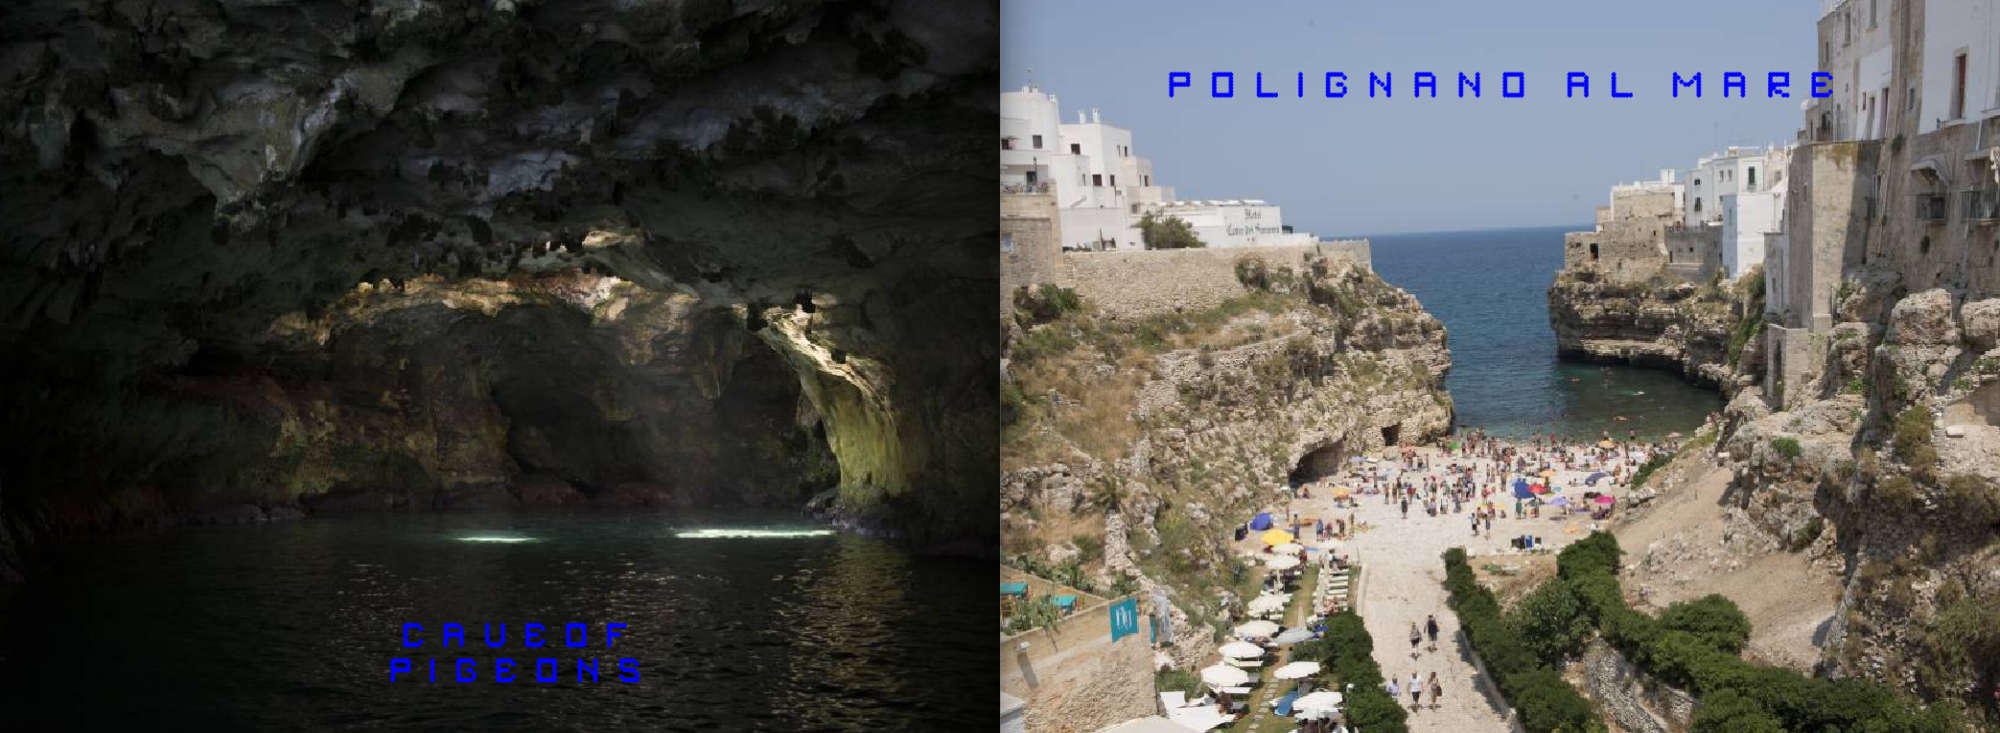 Puglia Album - Page 6: The Cave of Pigeons - Page 7: The beach of Polignano